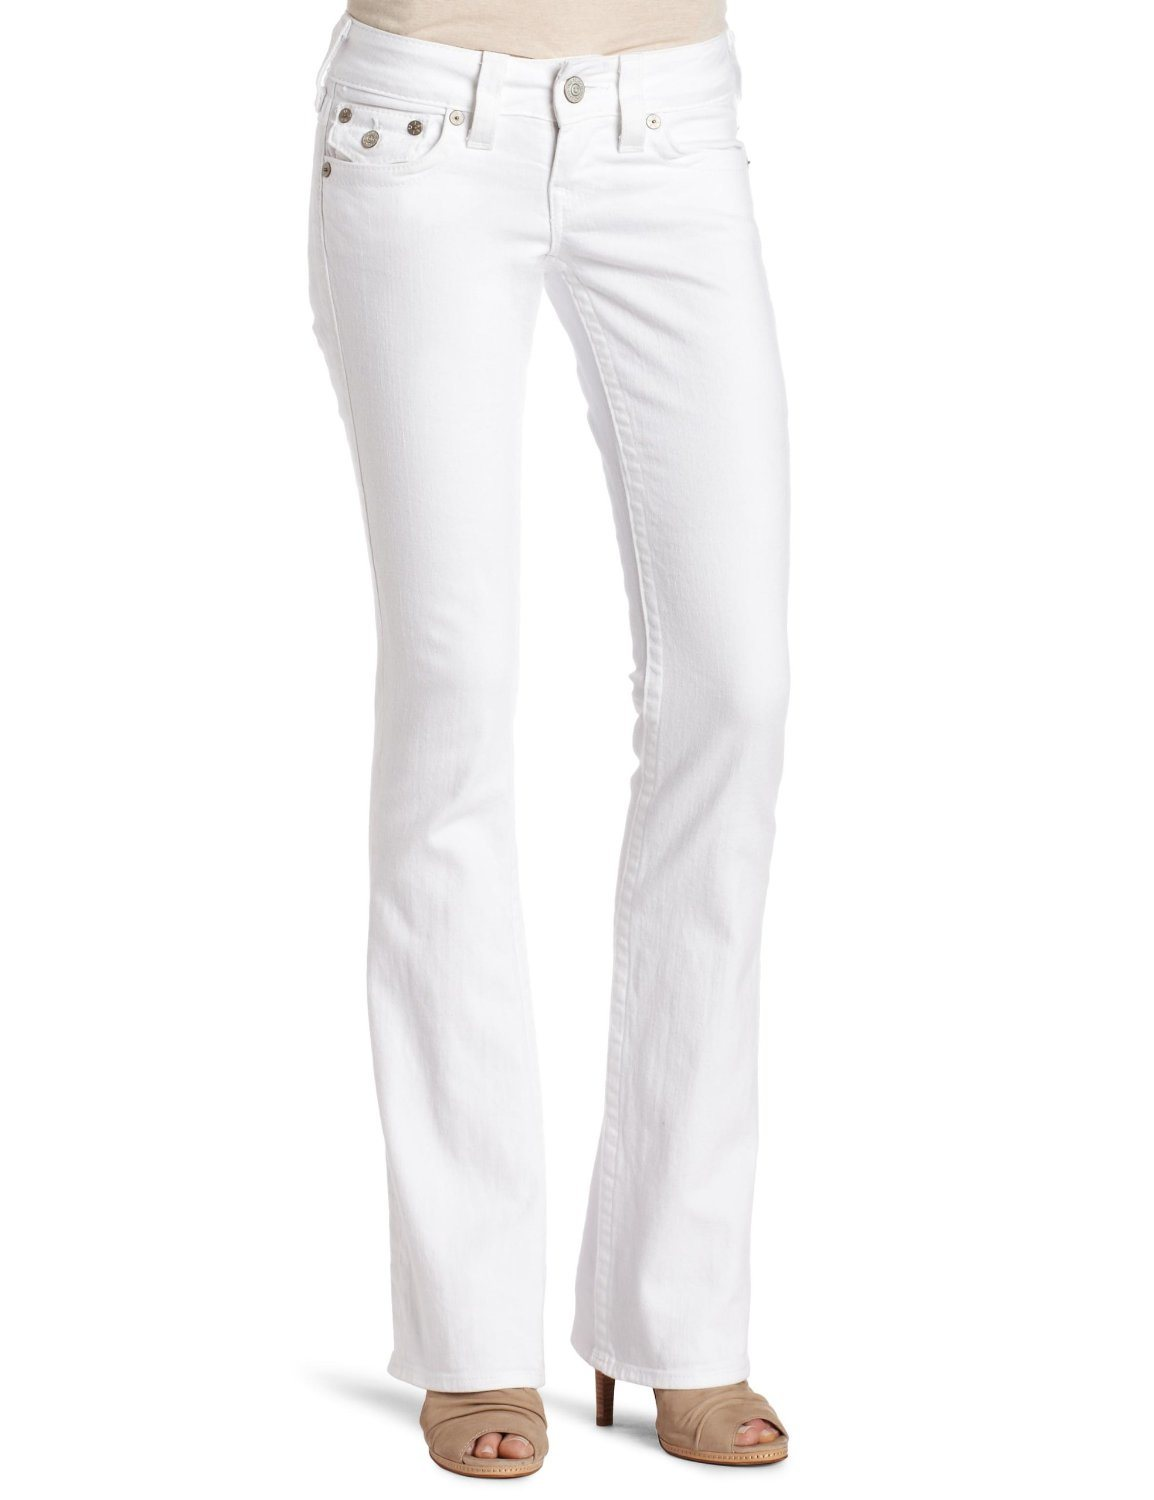 Scrub pants from White Cross including tall, petite and plus sizes. On-trend styles include cargo, flare and capri. Nursing scrubs in many modern colors.